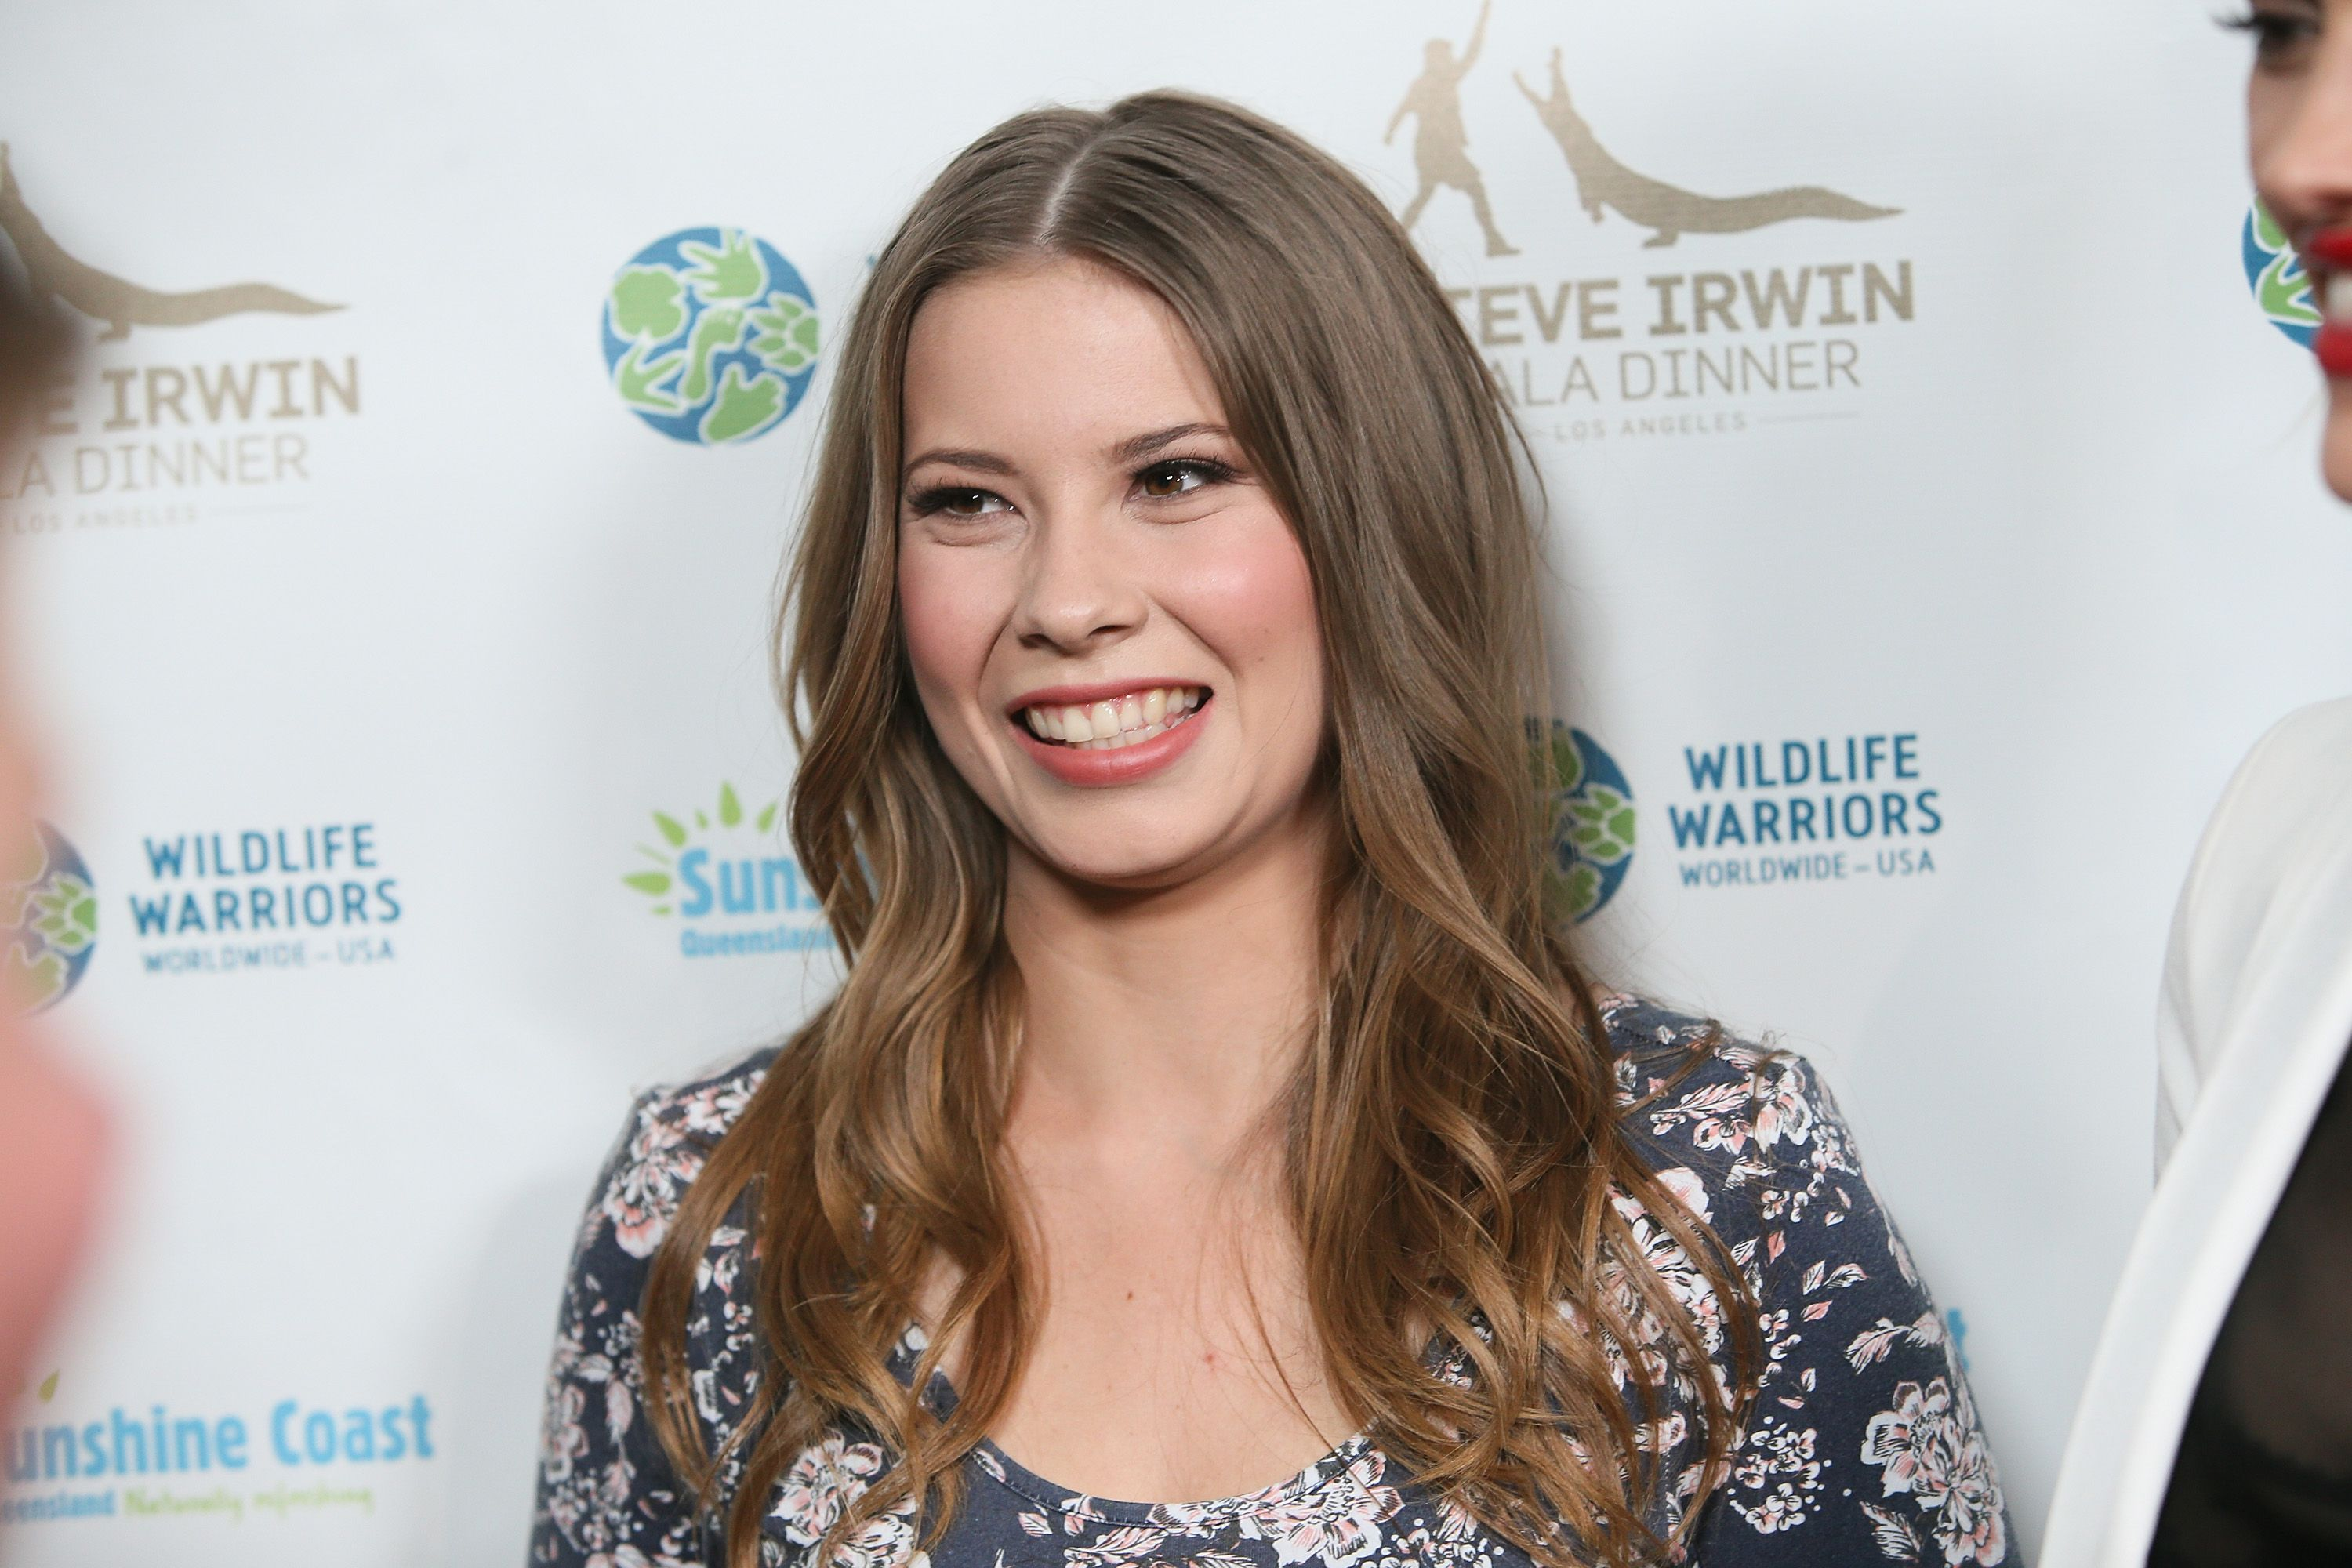 Actress Bindi Irwin at the Steve Irwin Gala Dinner at the SLS Hotel at Beverly Hills on May 13, 2017 | Photo: Getty Images